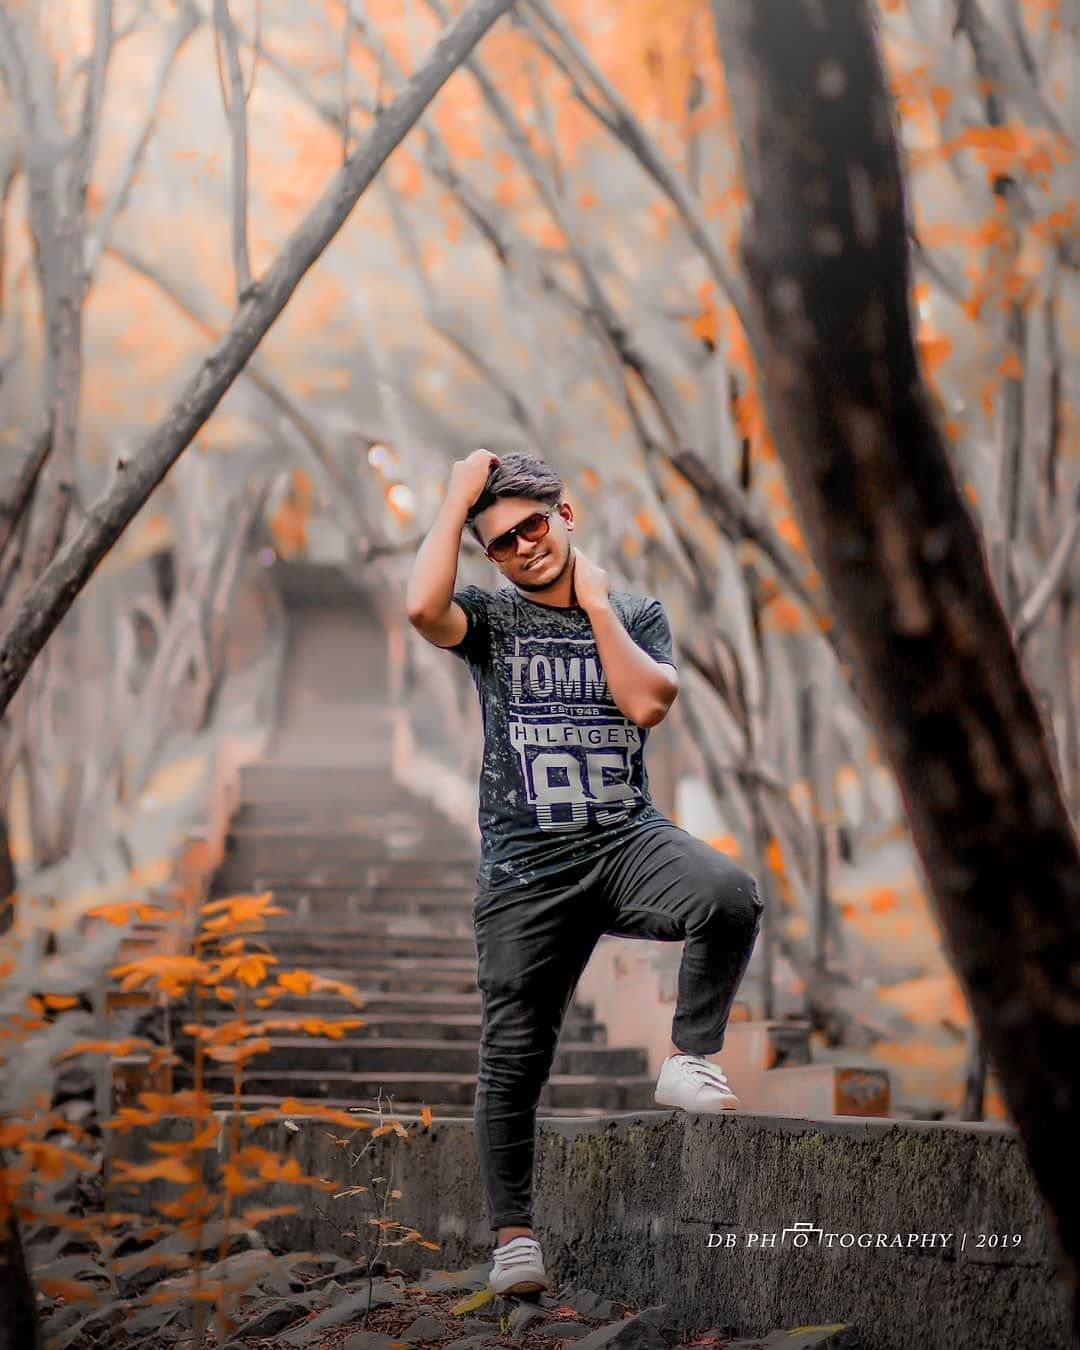 Best Cb Editing Background Download Full Hd Best Cb Editing Background Photo Editing Lightroom